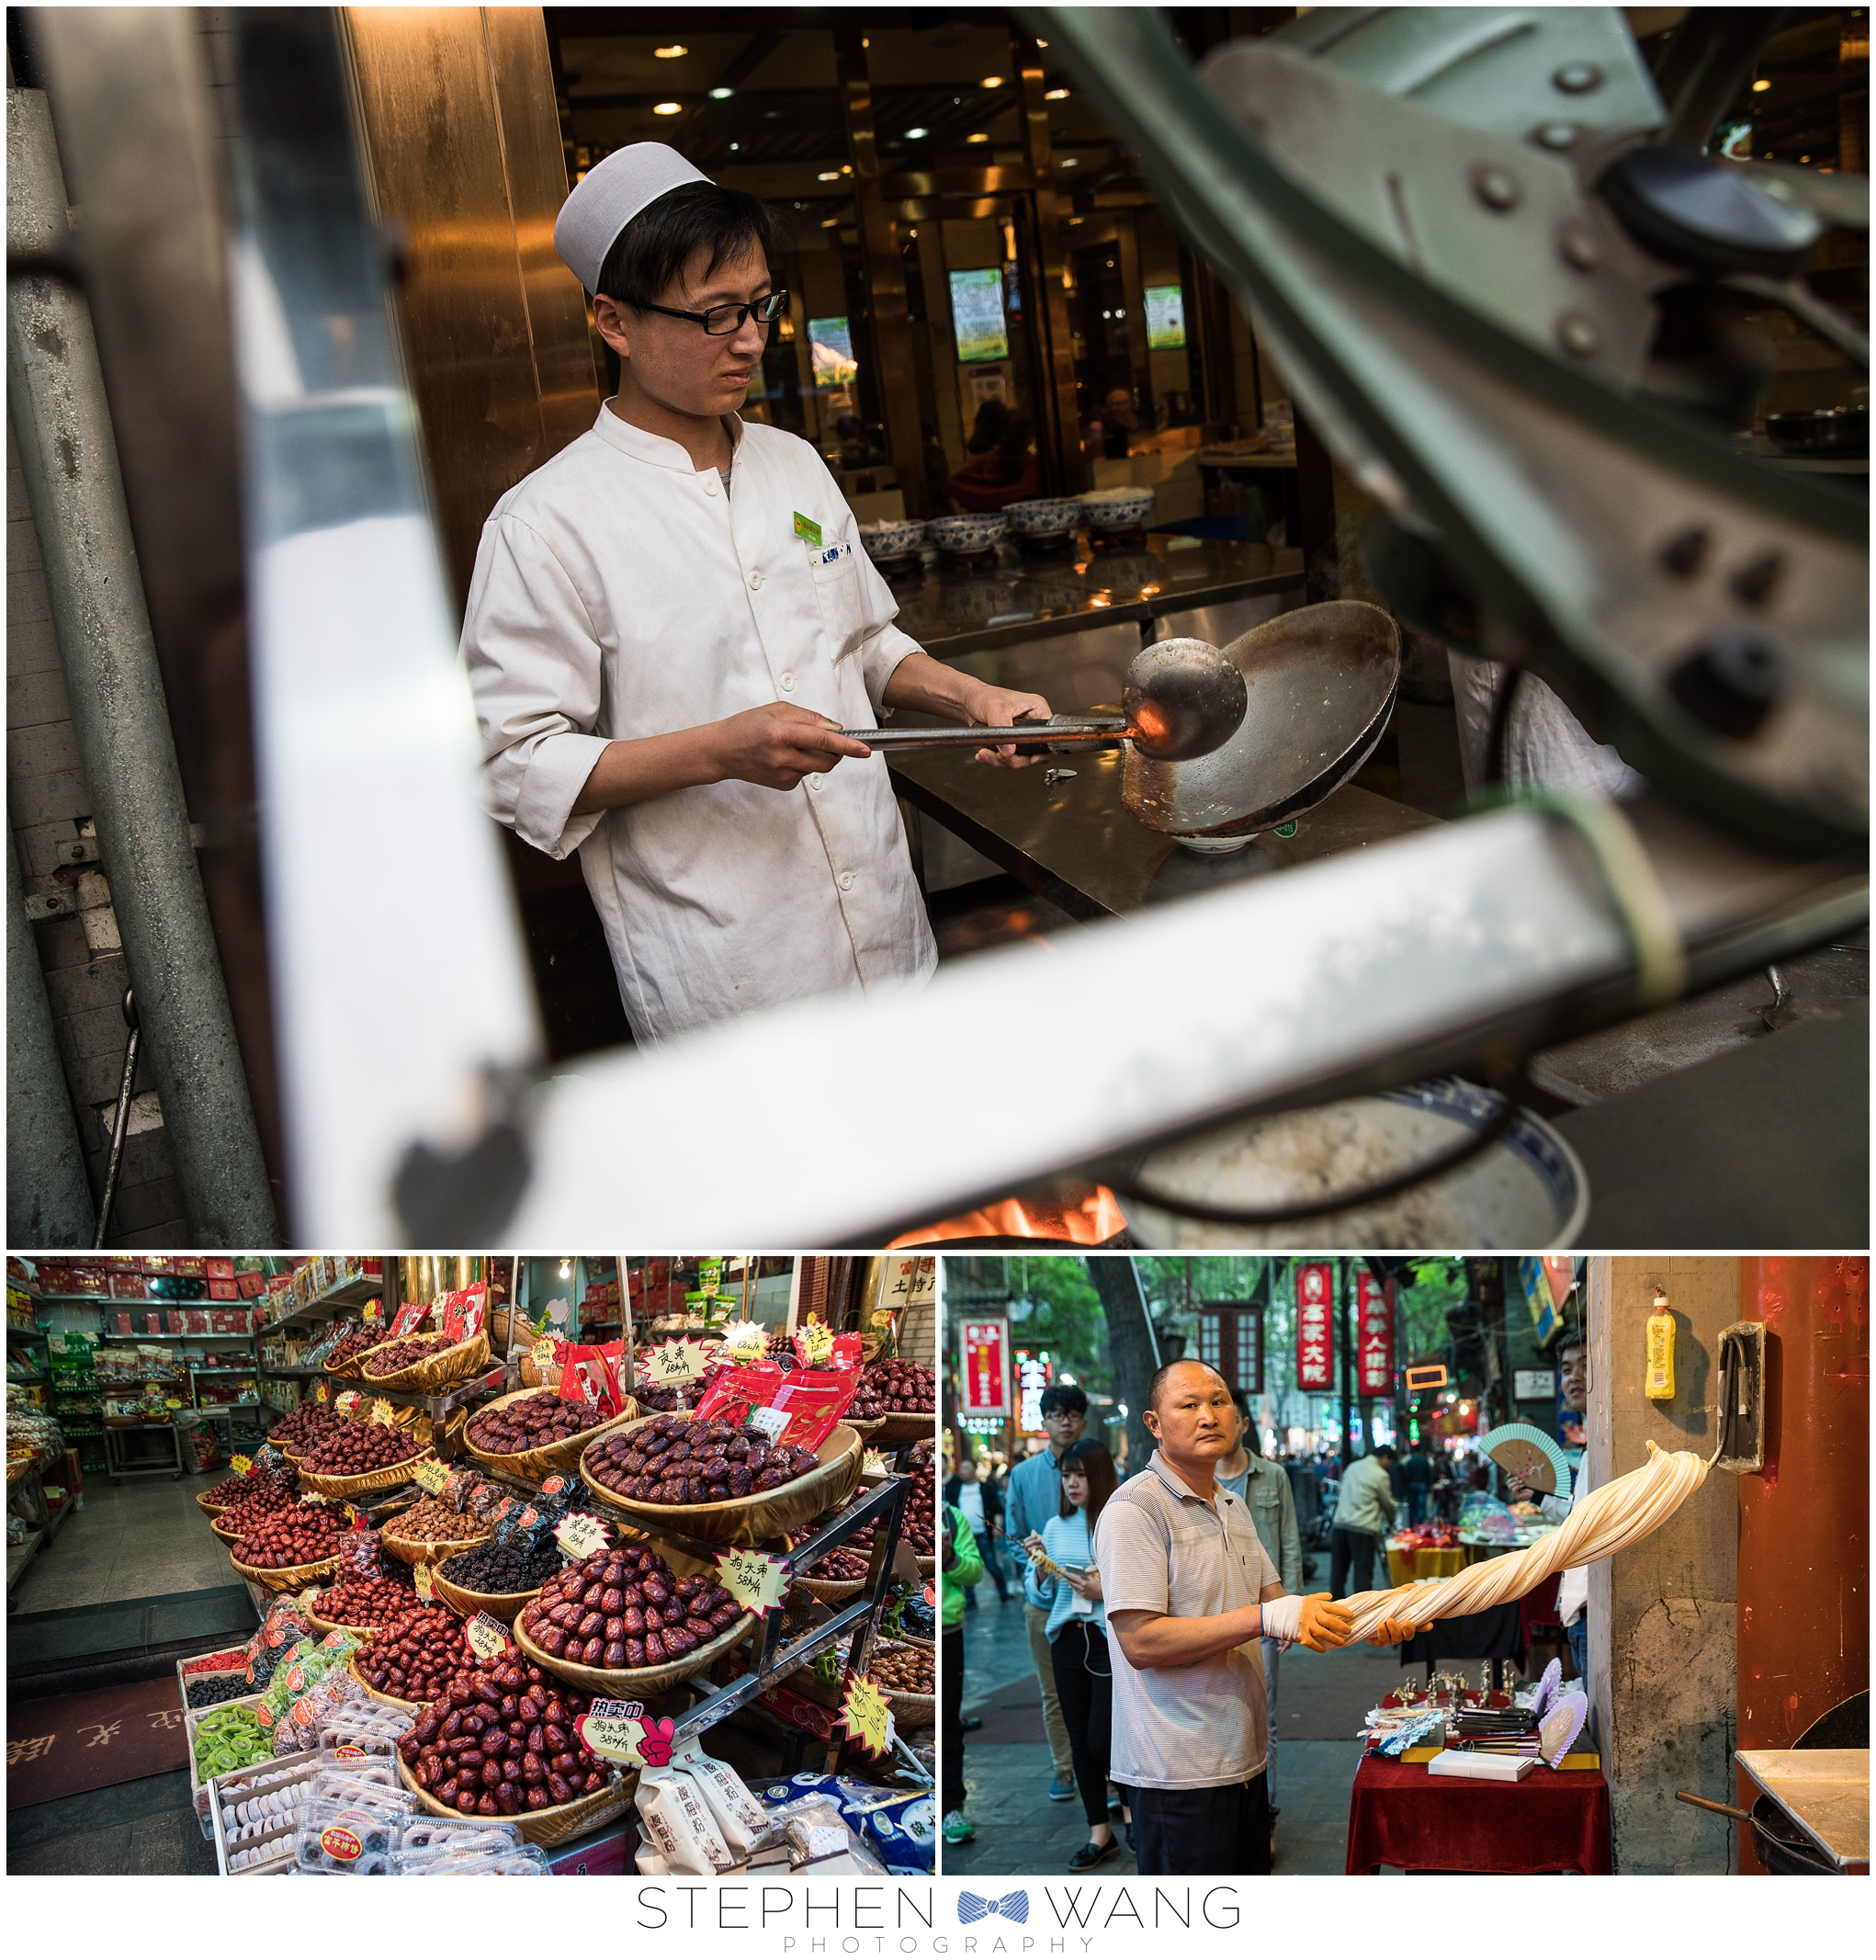 Visiting the Muslim district in Xian, and exploring a local market.  So many interesting people to see and foods to try.